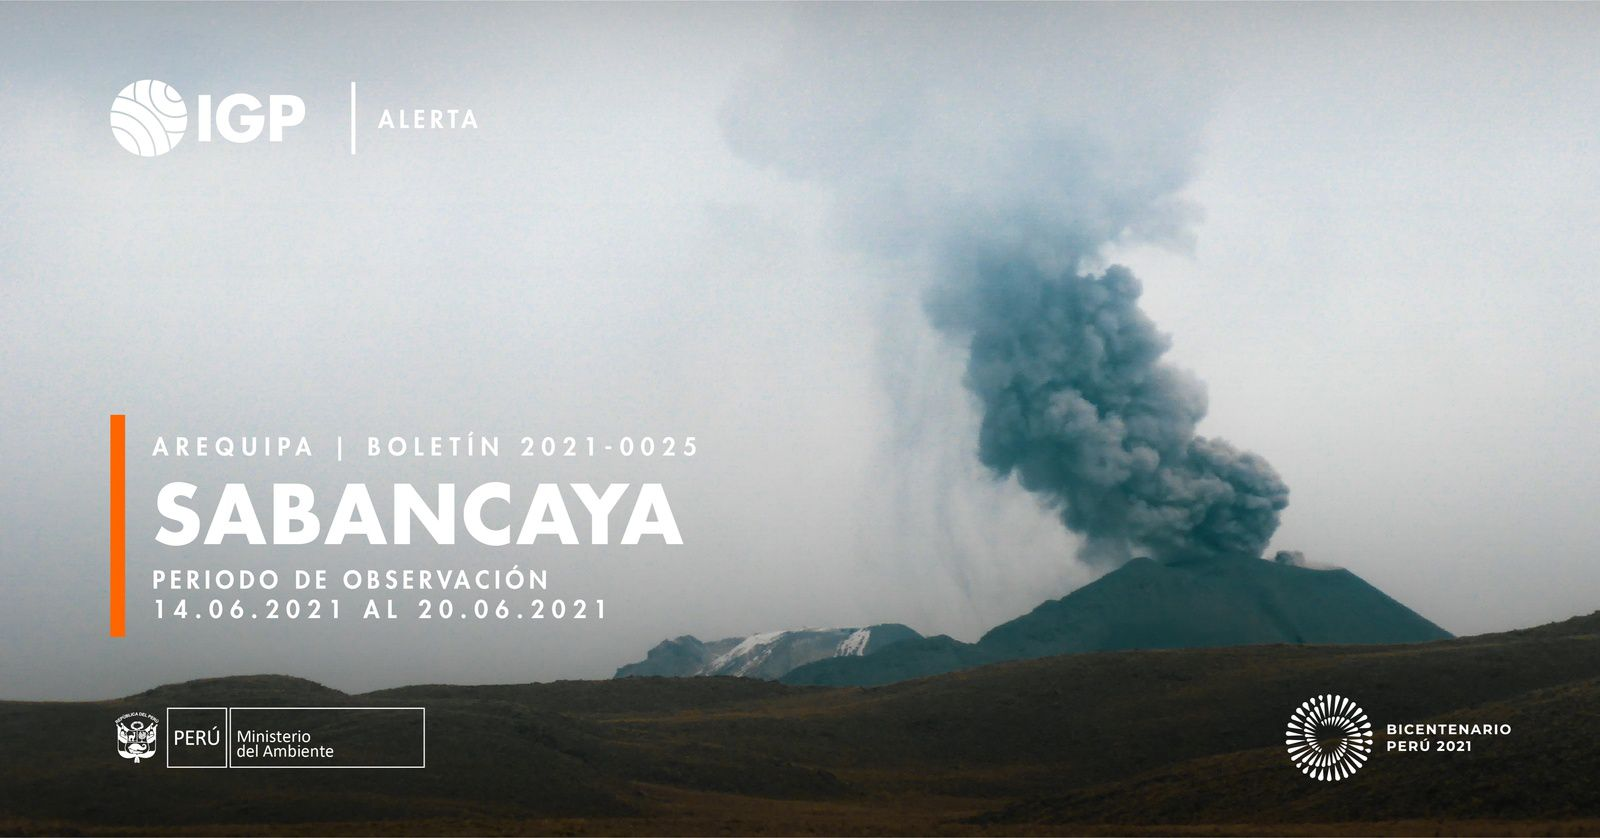 Sabancaya - activity from June 14 to 20 - report by I.G. Peru